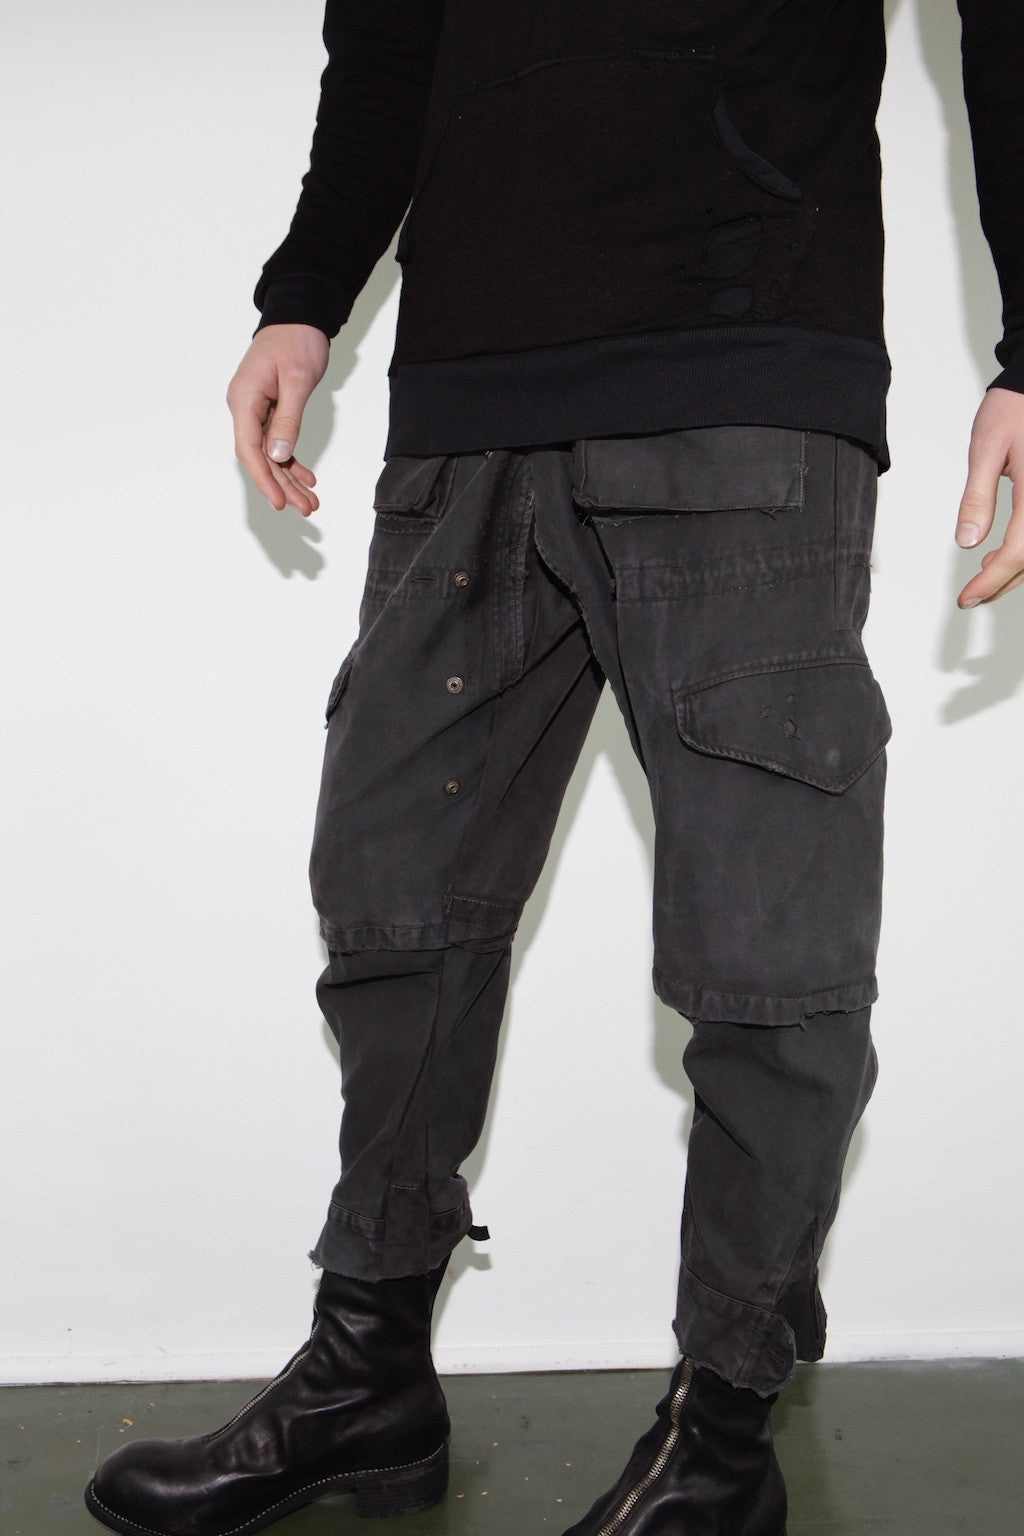 CHARCOAL ARMY JACKET LOUNGE PANT